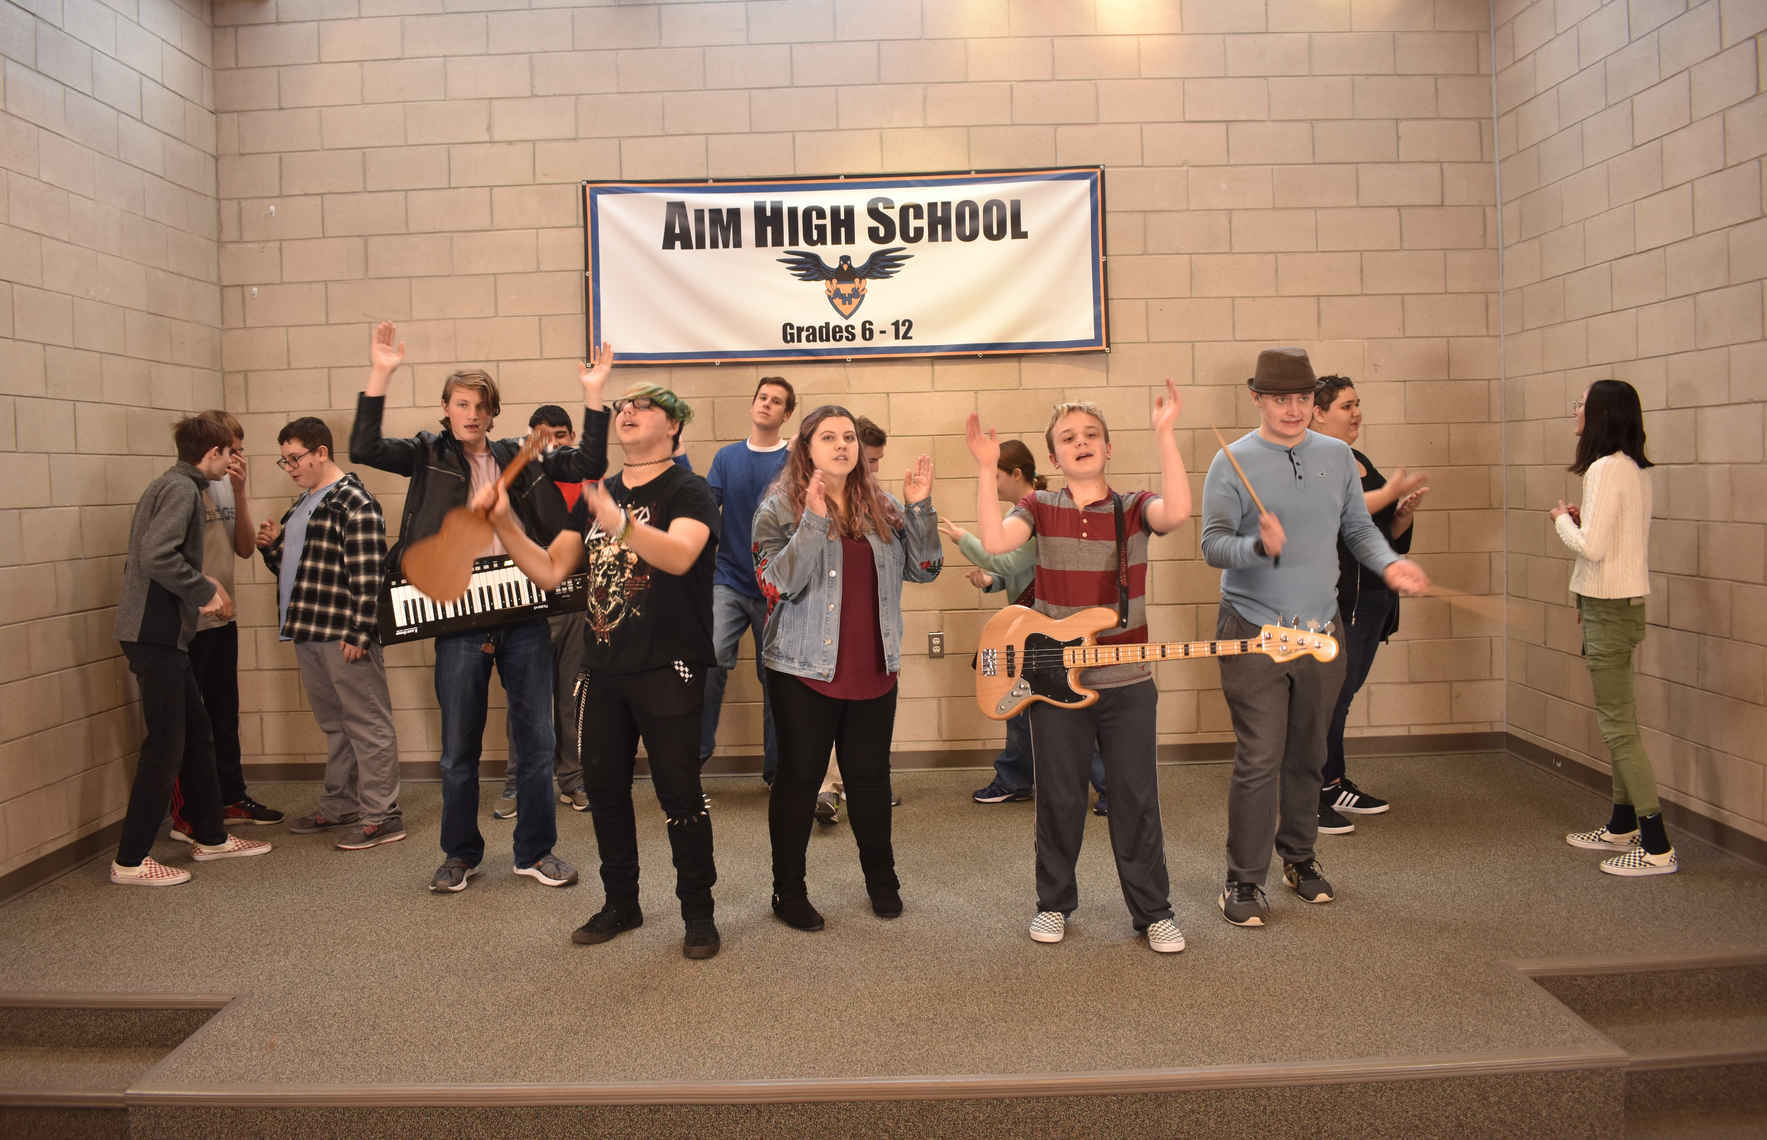 Come Together for our Students and Support Aim High! image